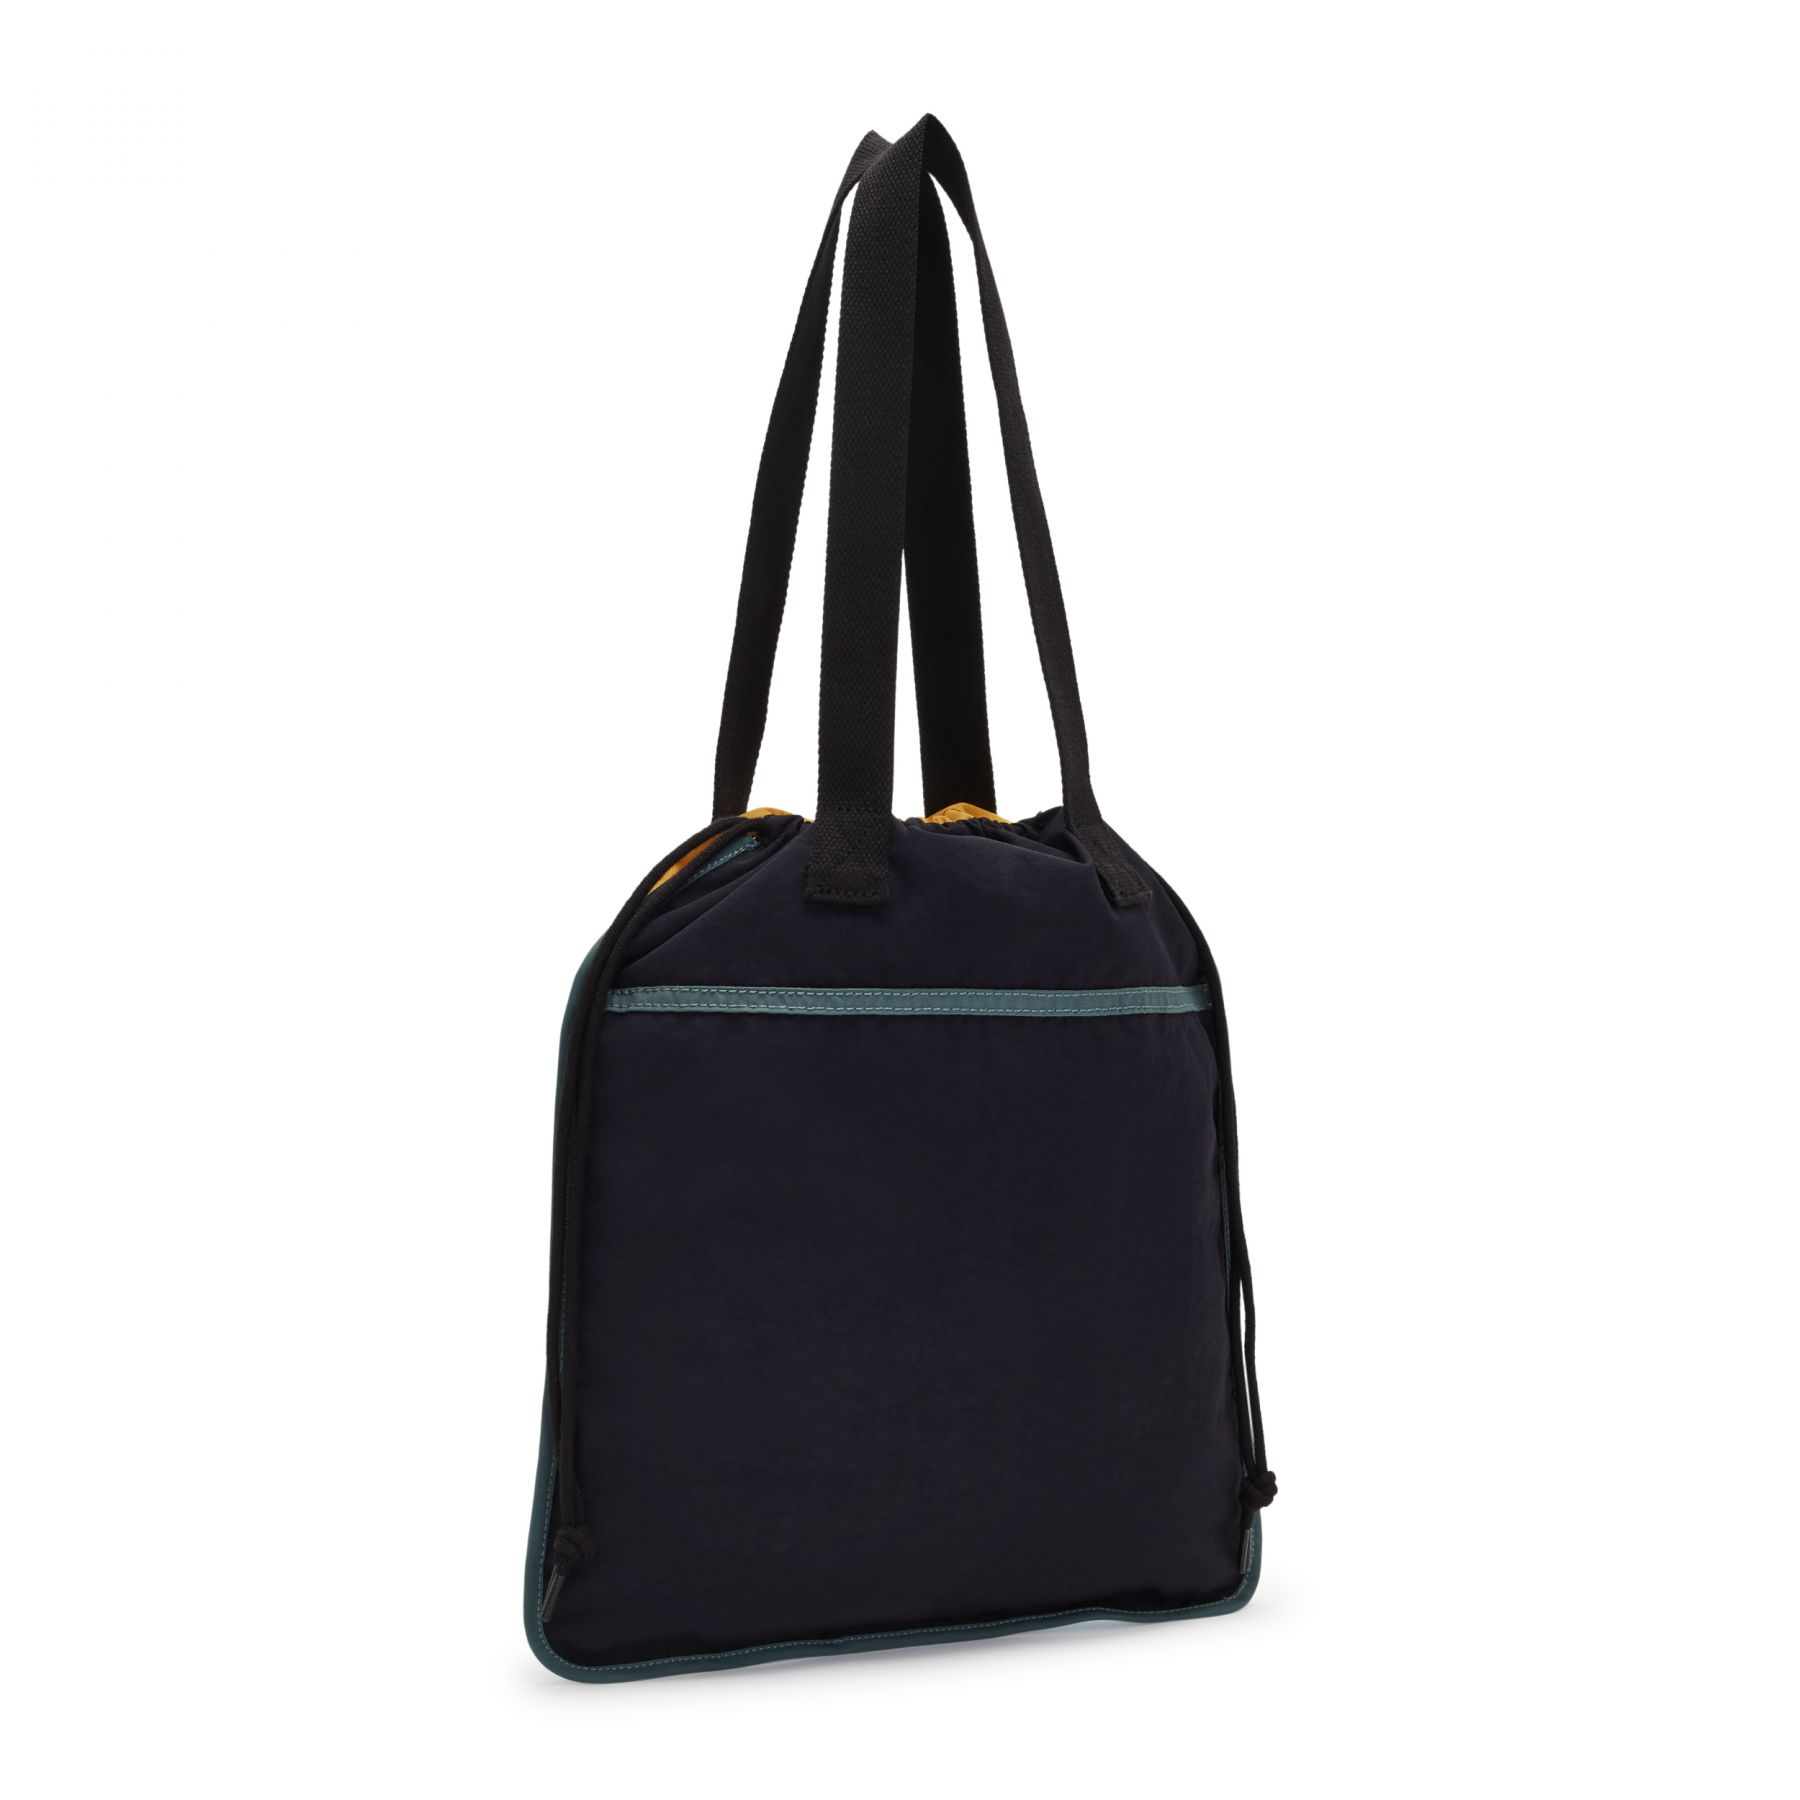 NEW HIPHURRAY BAGS by Kipling - Back view